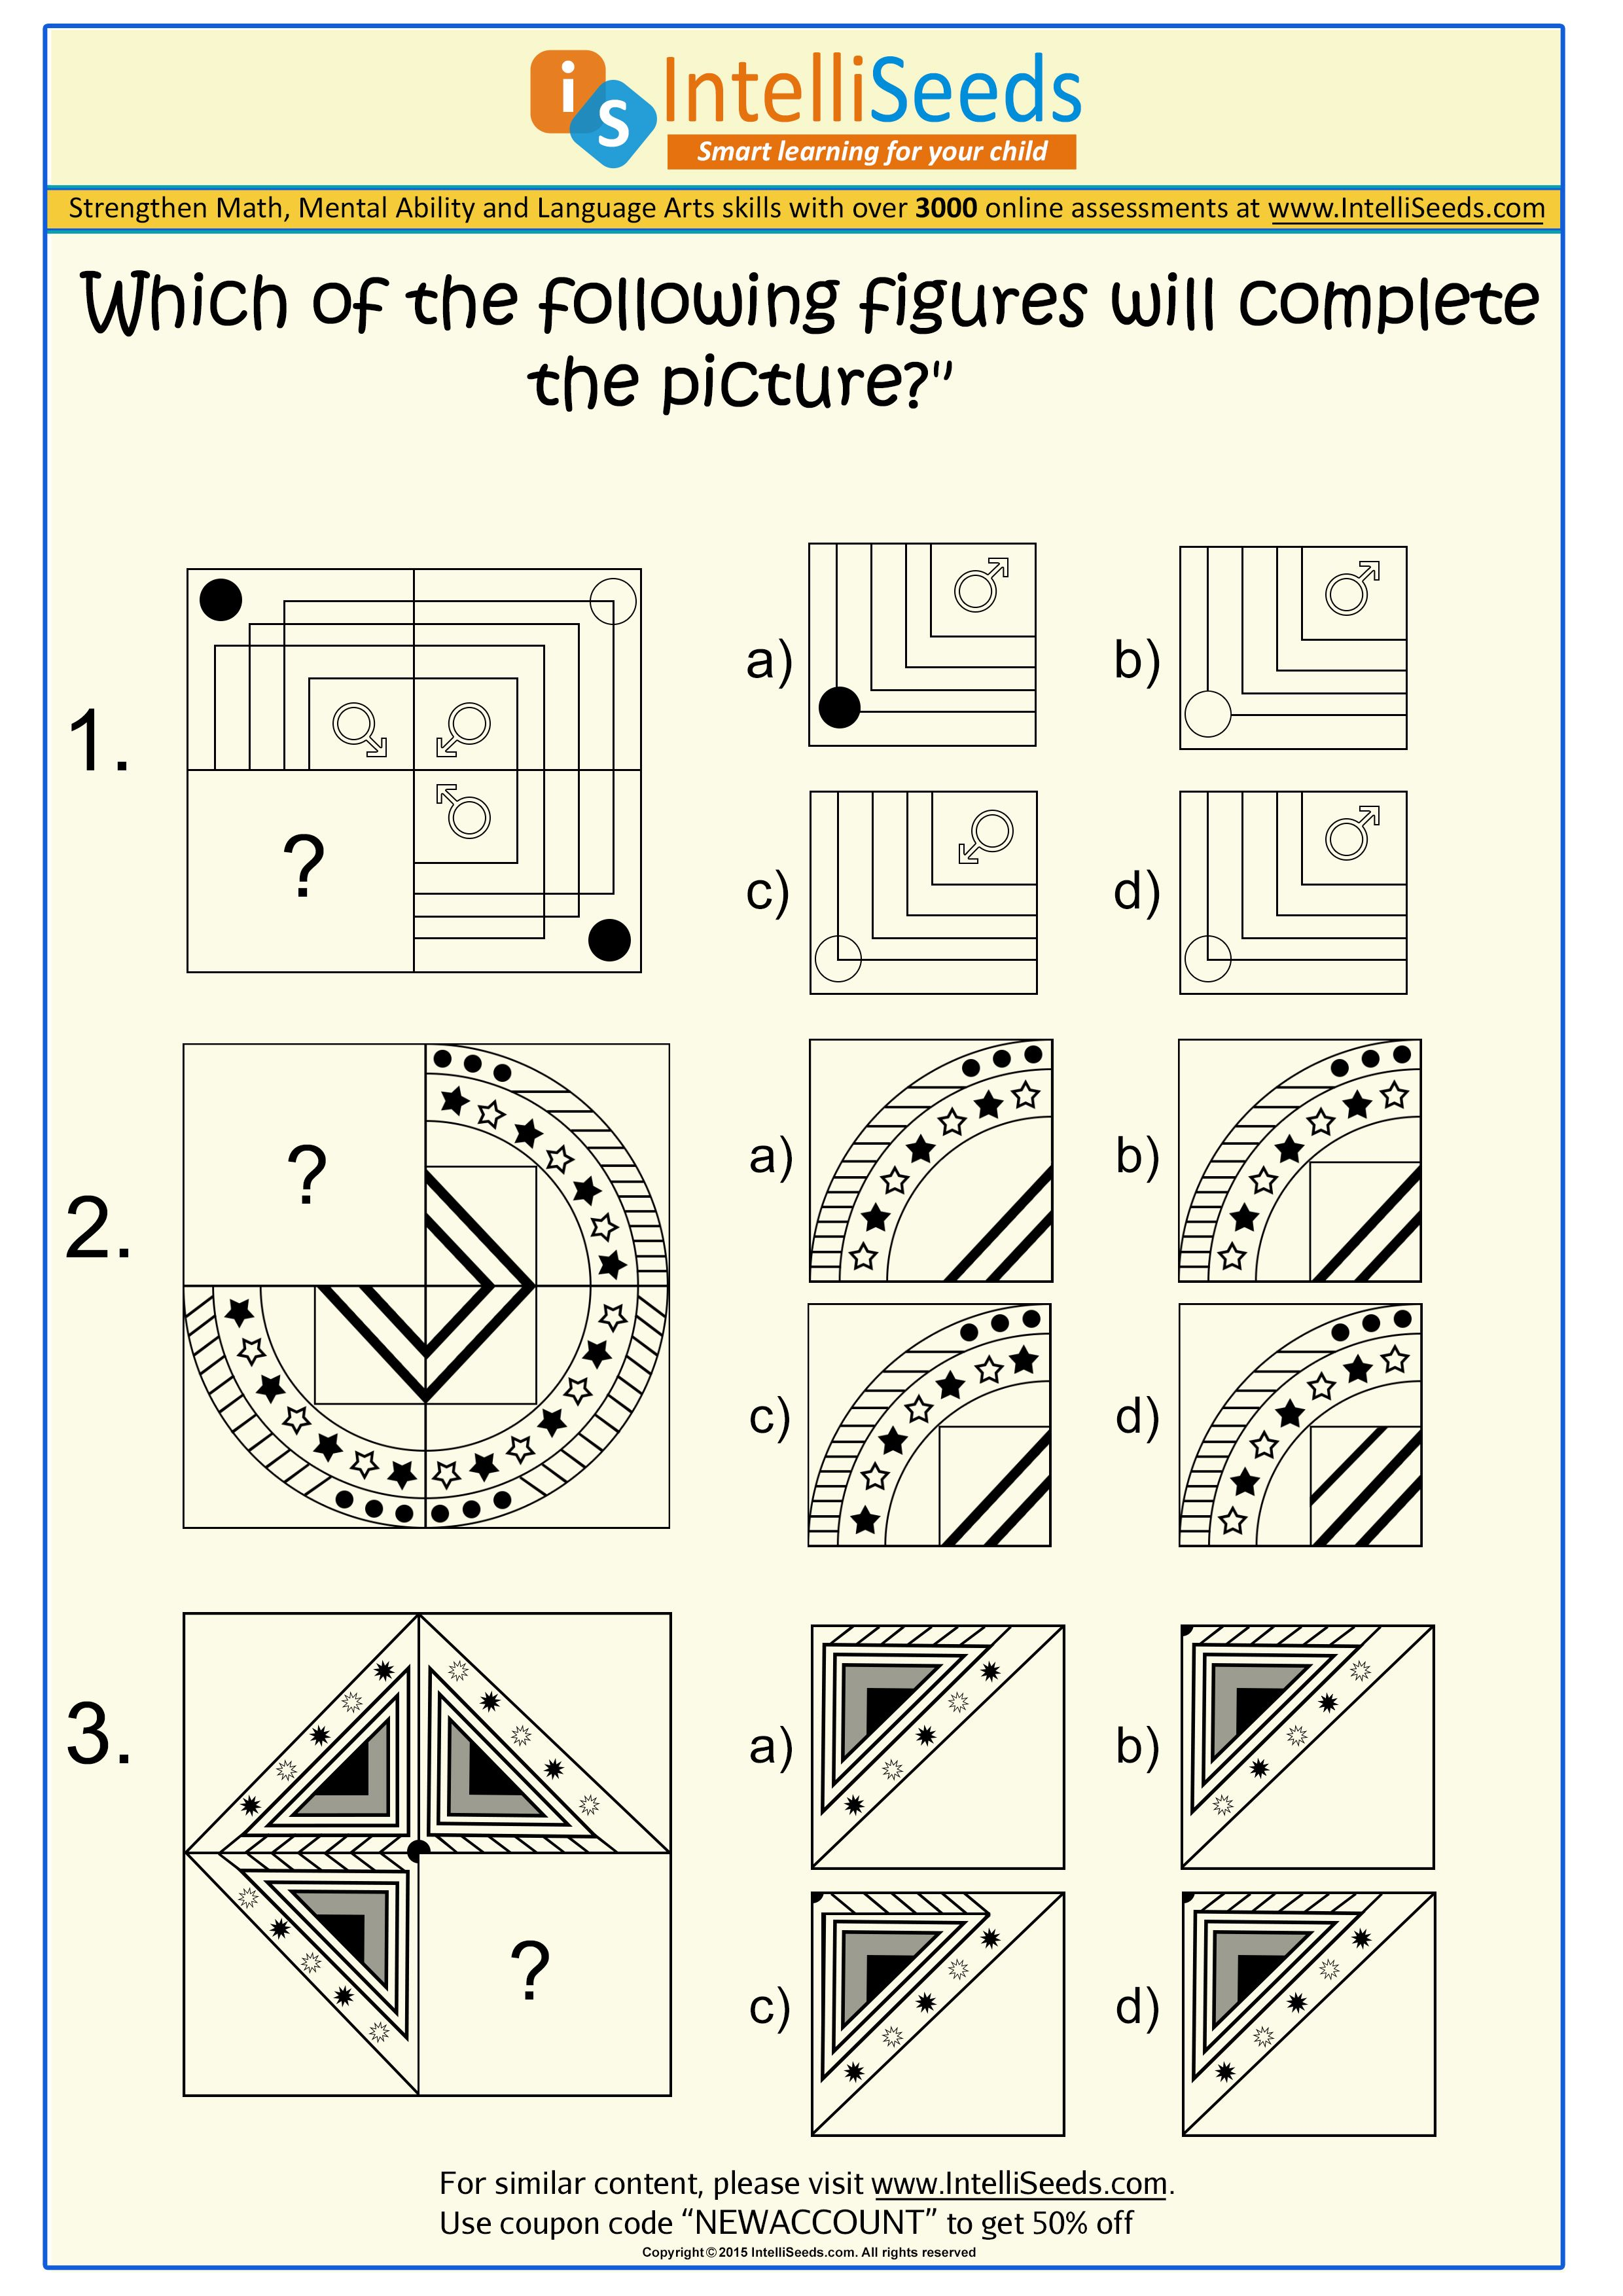 Find the correct fit to complete the image